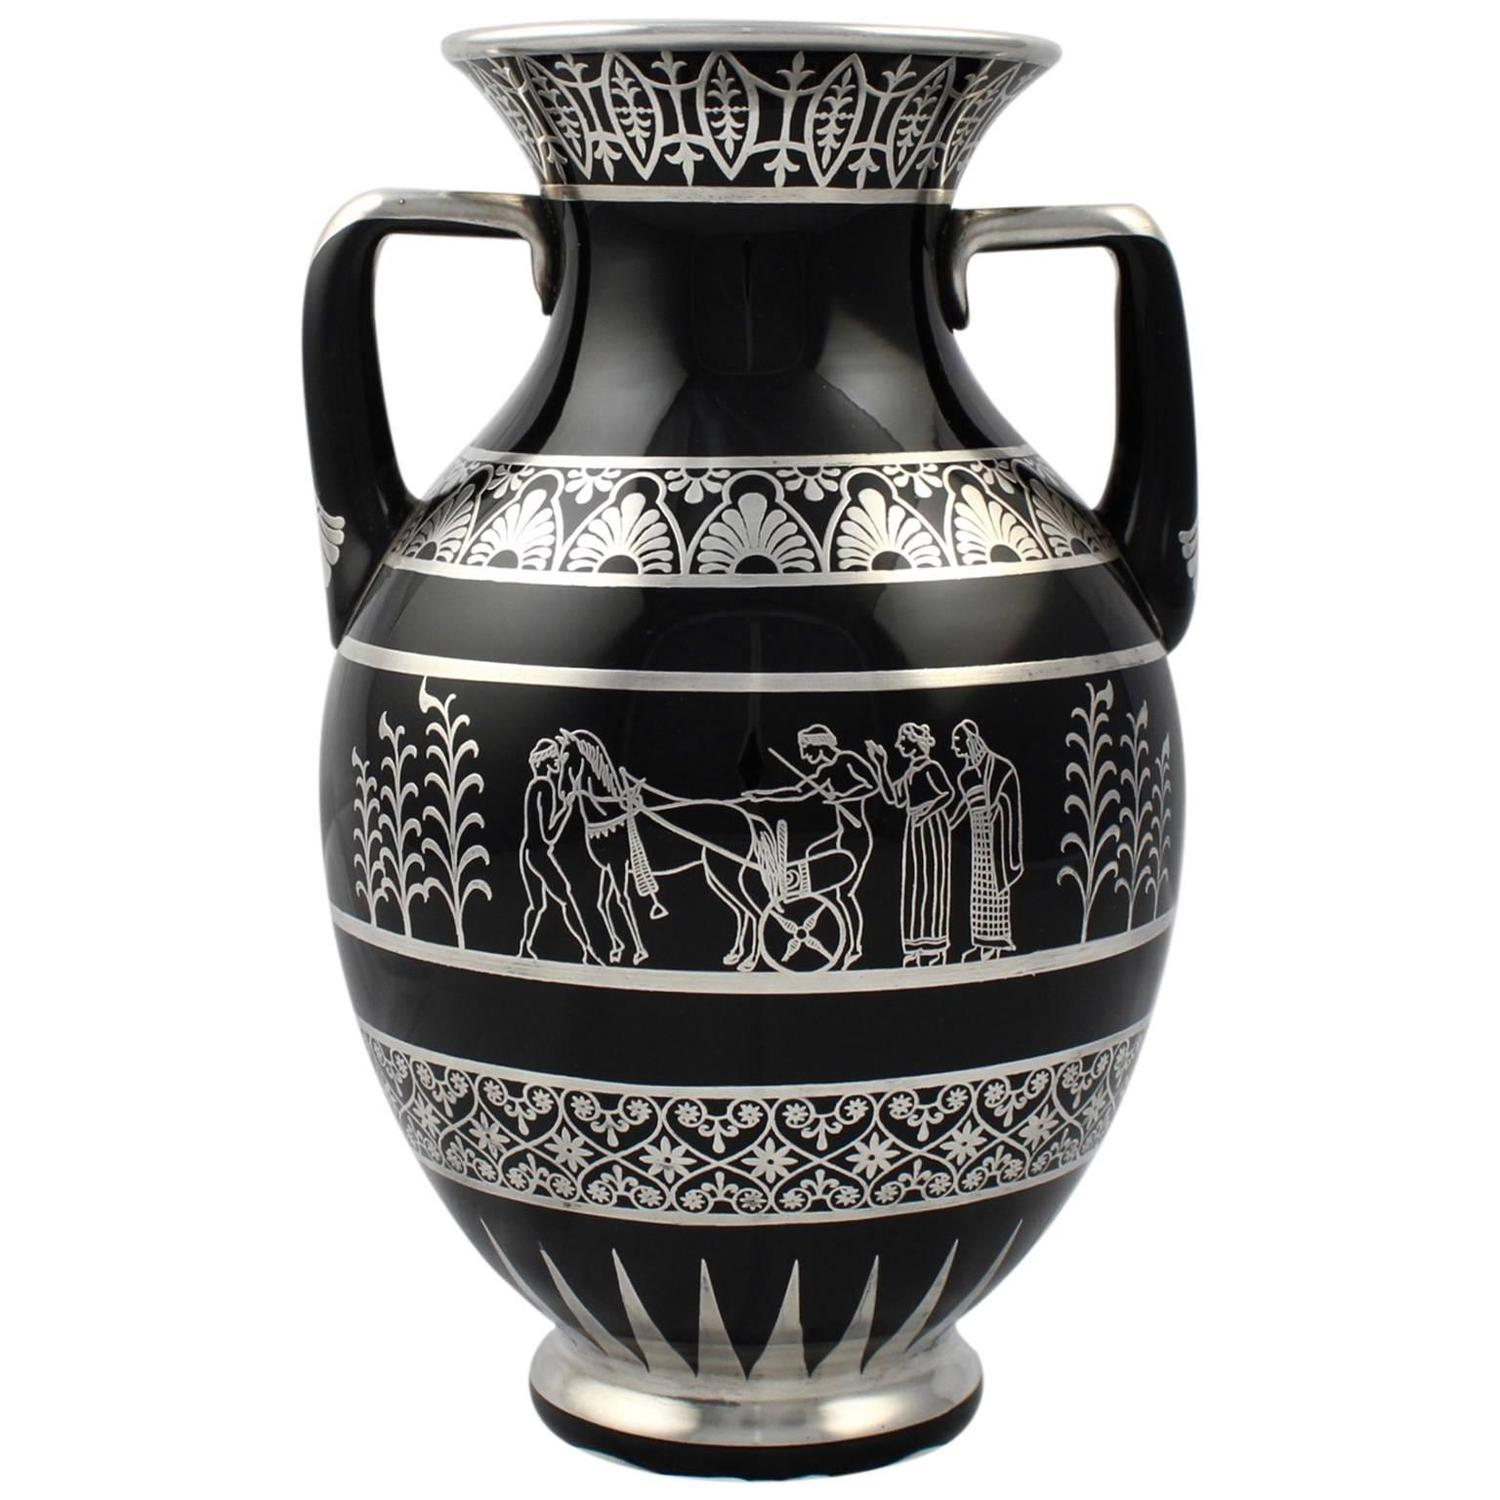 Rare rockwell art deco period greek revival silver overlay black rare rockwell art deco period greek revival silver overlay black glass vase for sale at 1stdibs reviewsmspy